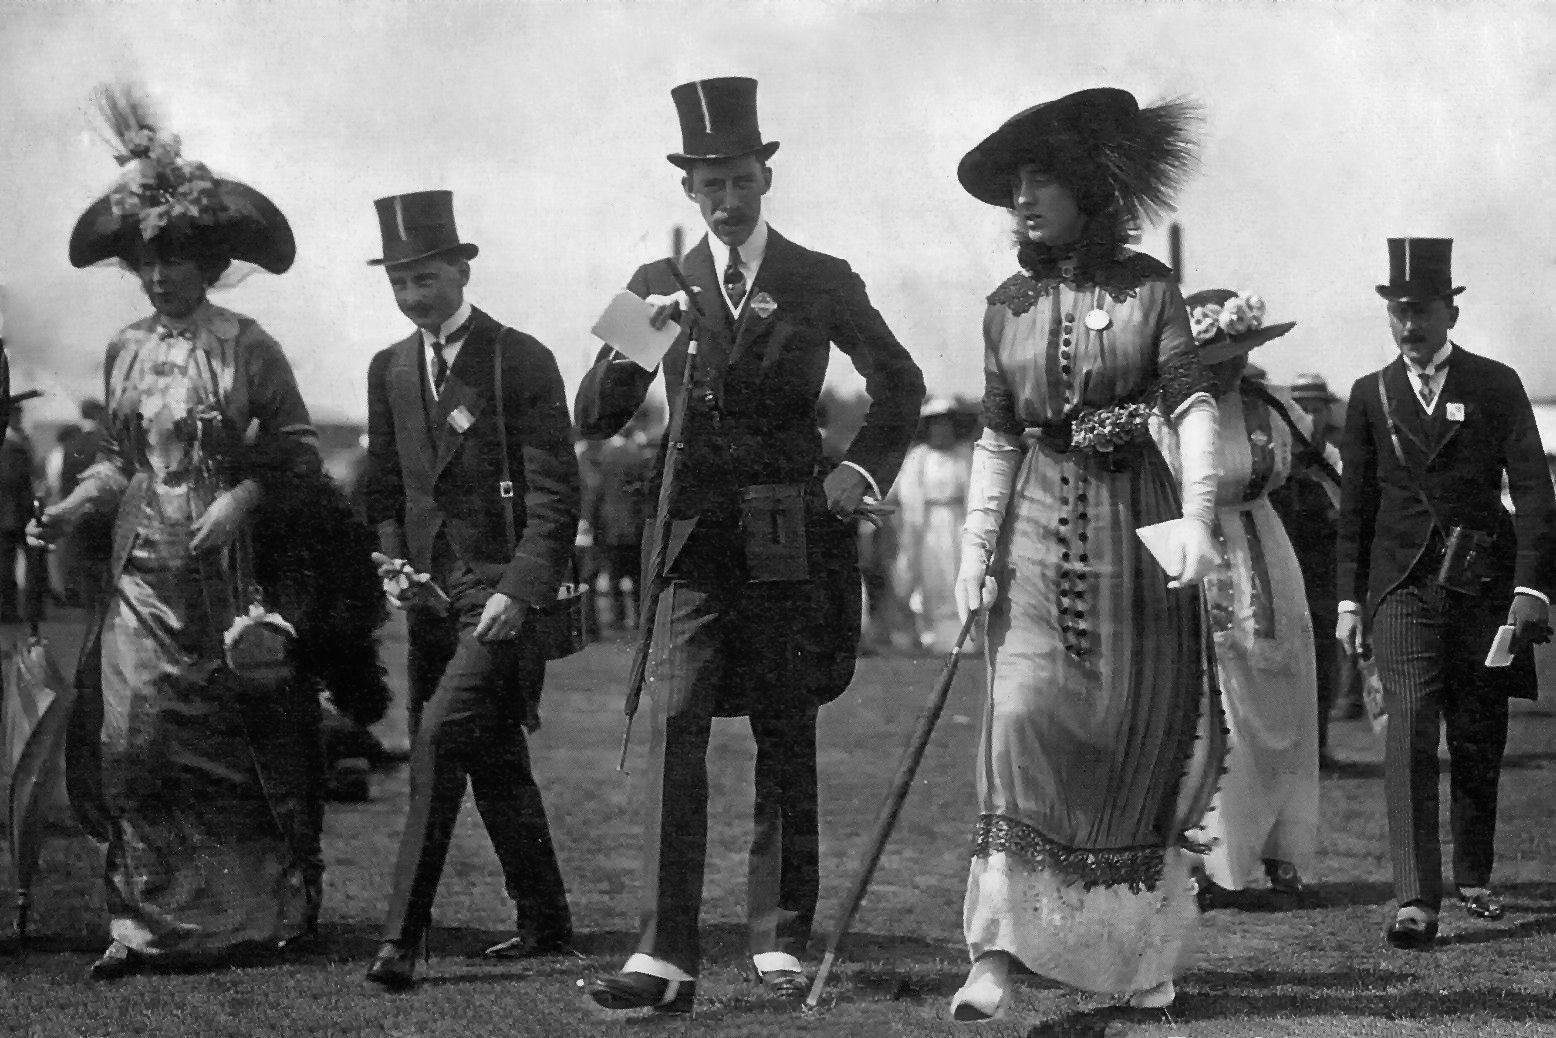 English socialite Vita Sackville-West and friends at Ascot, 1912